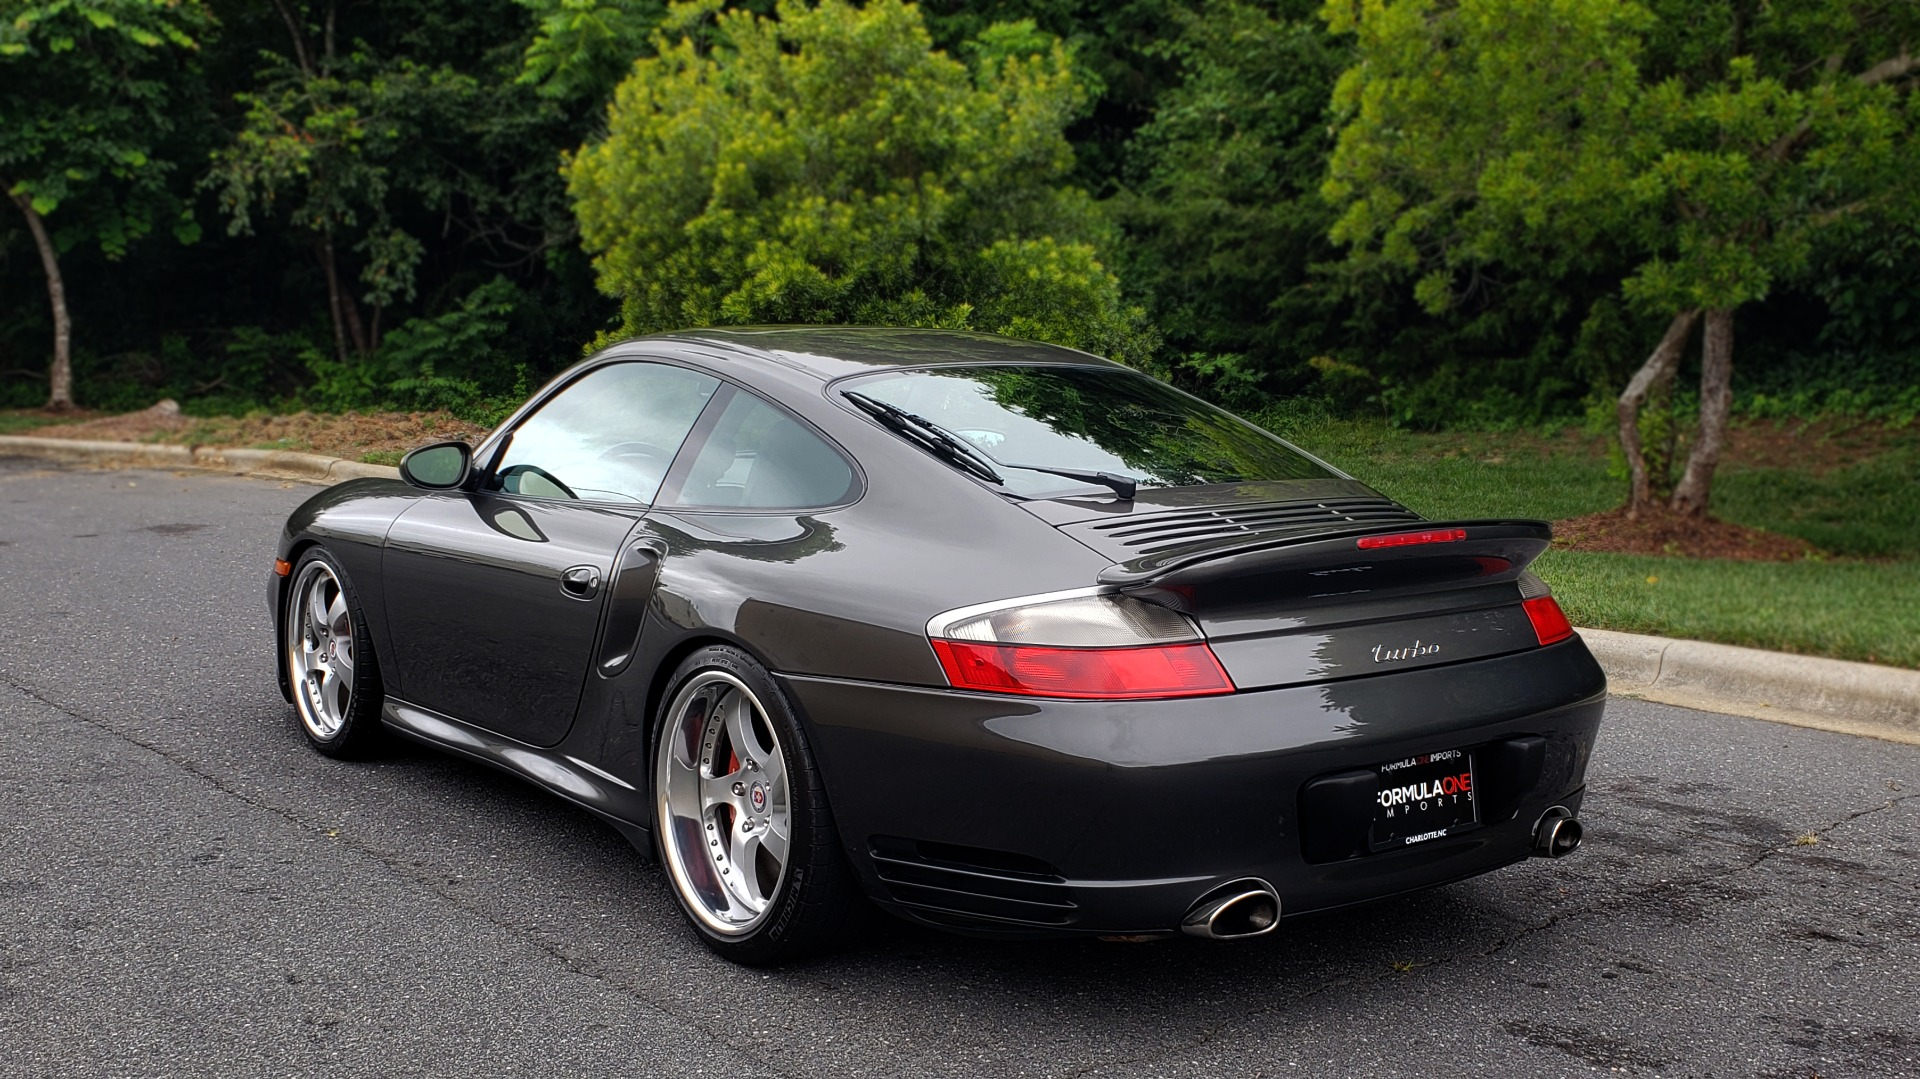 Used 2002 Porsche 911 CARRERA TURBO COUPE / 6-SPD MANUAL / PERF UPGRADES & CUSTOM TUNE for sale Sold at Formula Imports in Charlotte NC 28227 5